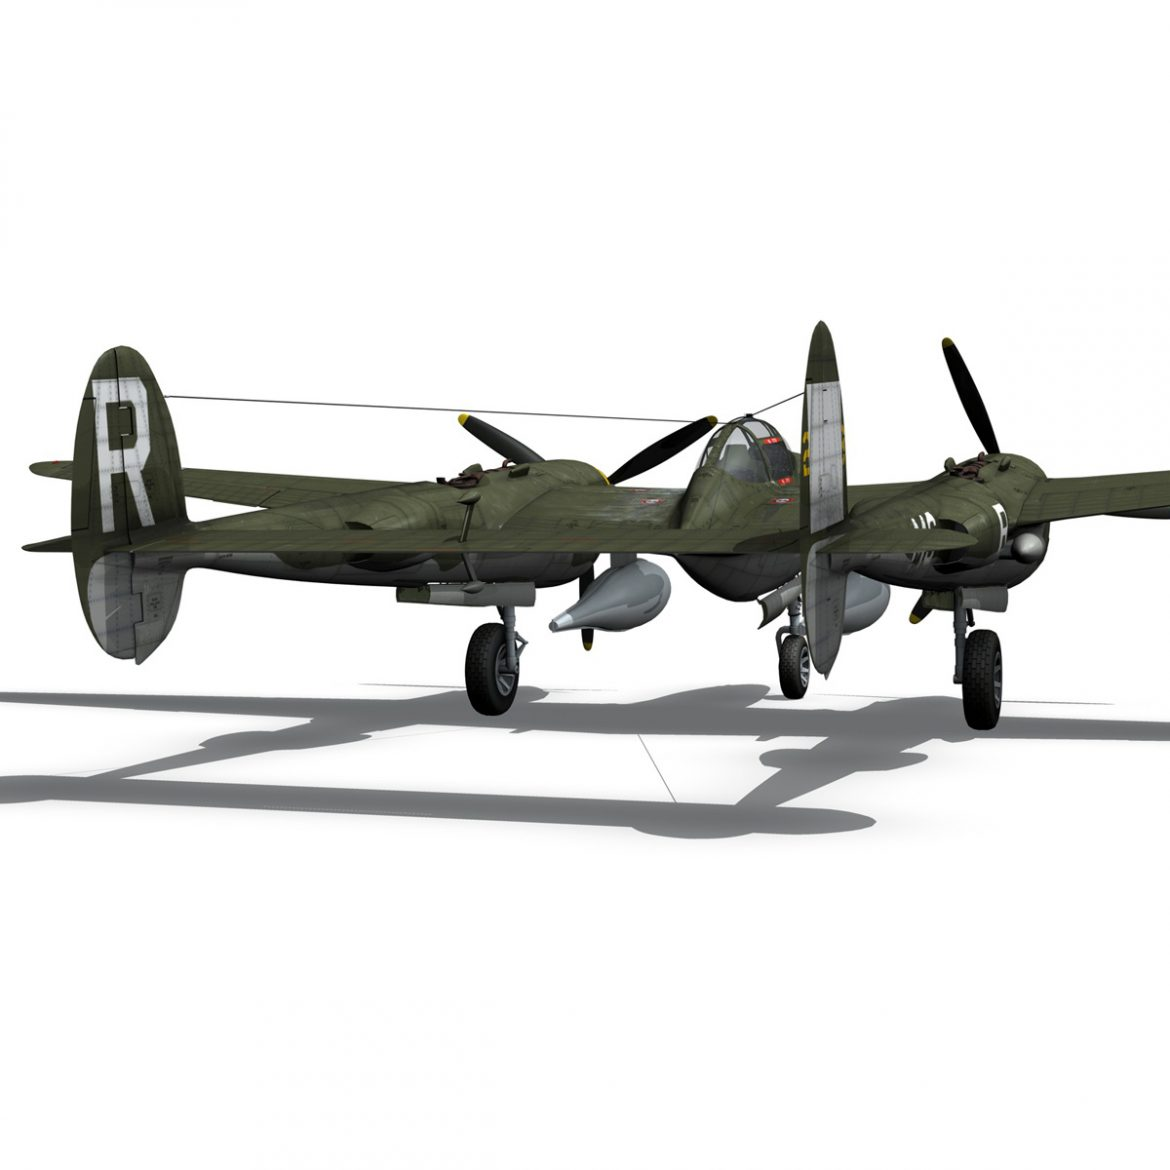 lockheed p-38 lightning – gentle annie 3d model fbx c4d lwo obj 300091